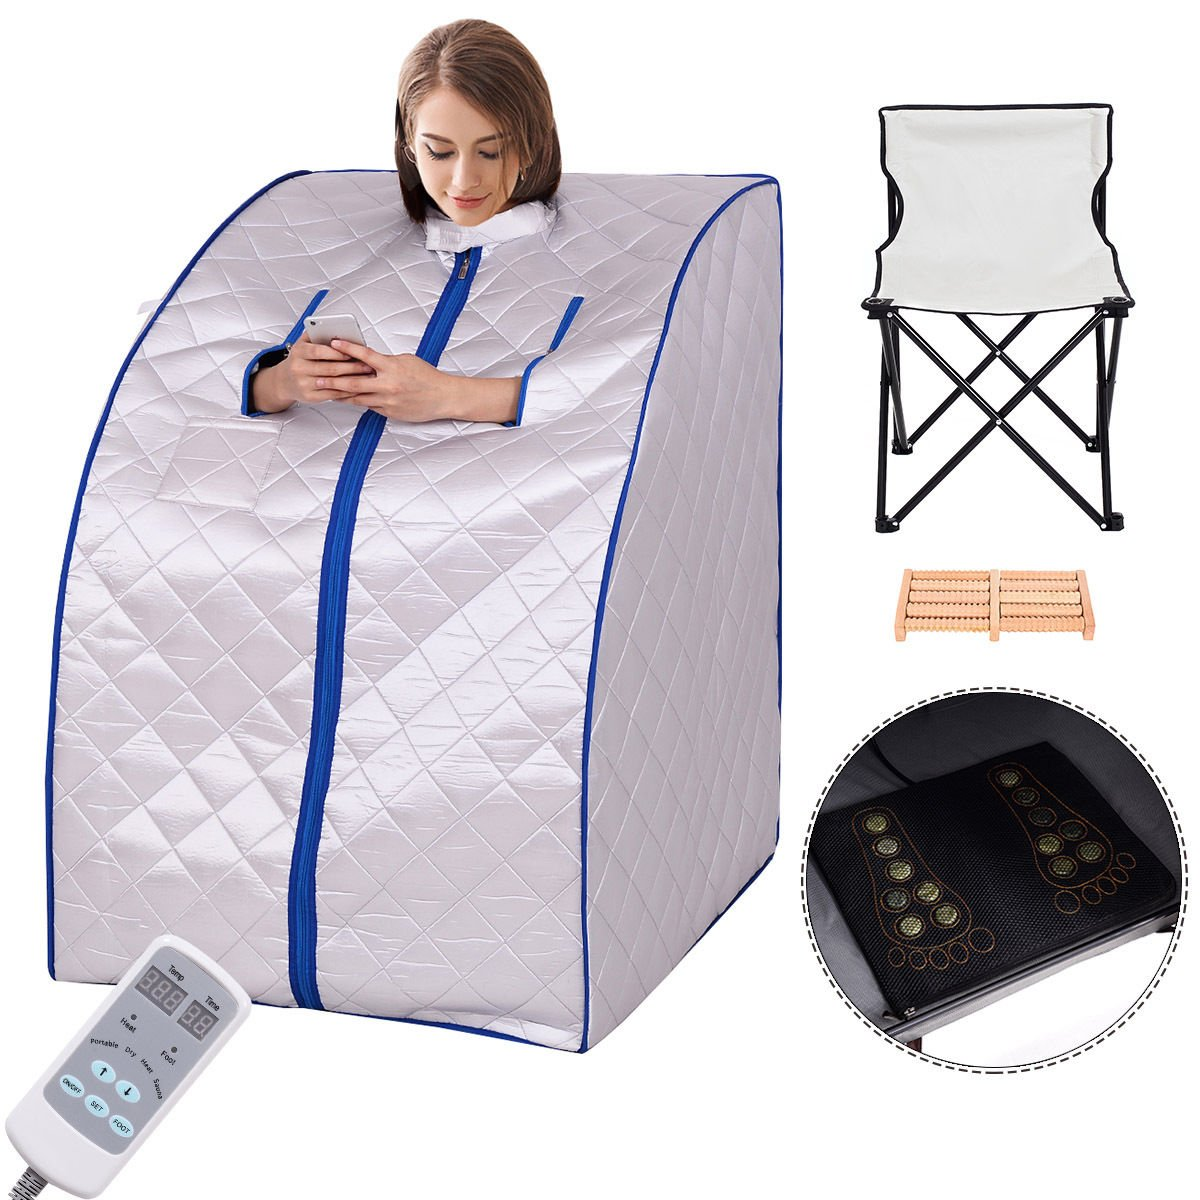 Giantex Portable Far Infrared Spa Sauna Full Body Slimming Weight Loss Negative Ion Detox Therapy In Home Personal Sauna w/ Heating Foot Pad and Folding Chair (Silver) by Giantex